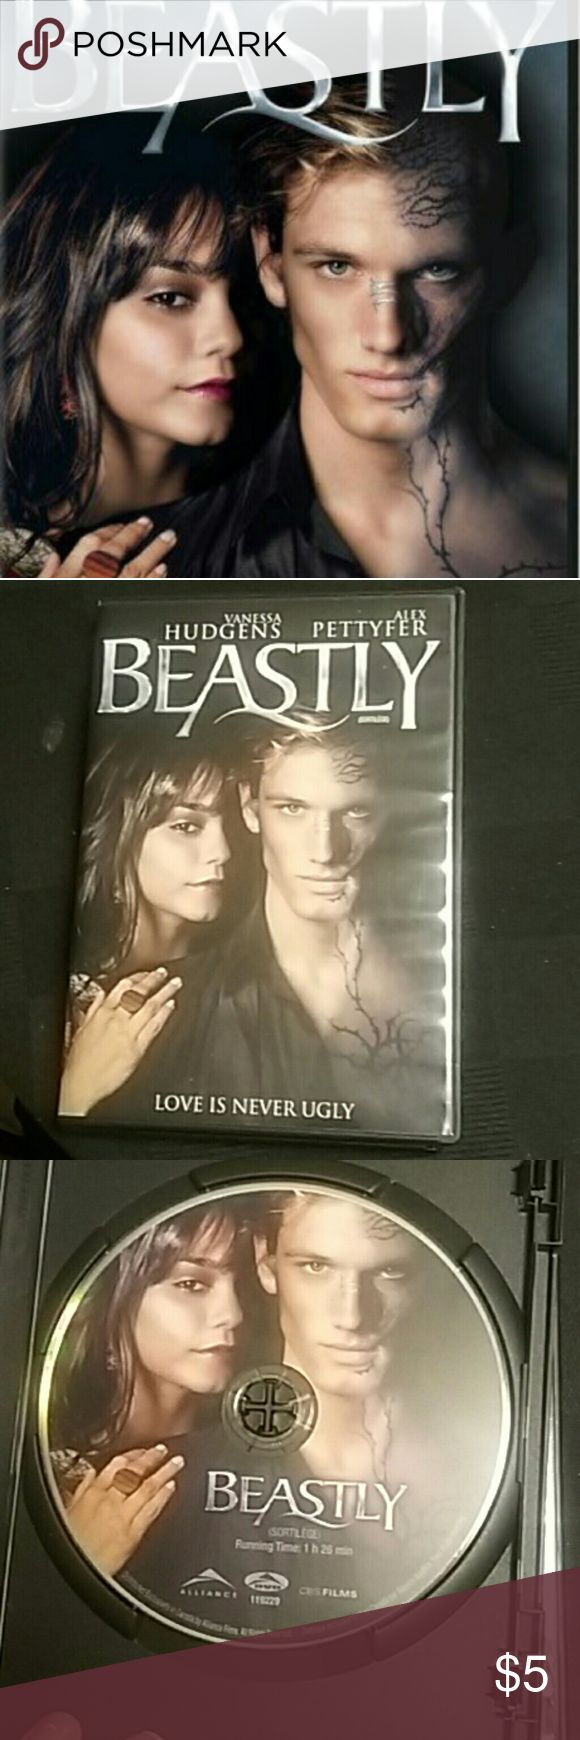 BEASTLY DVD Vanessa Hudgen's Beastly DVD Only watched twice since purchase, not my type of movie  Small scratches on back, but no skips or pauses during play  Tags: Vanessa hudgens DVD movie Beastly movies Hot Topic Other